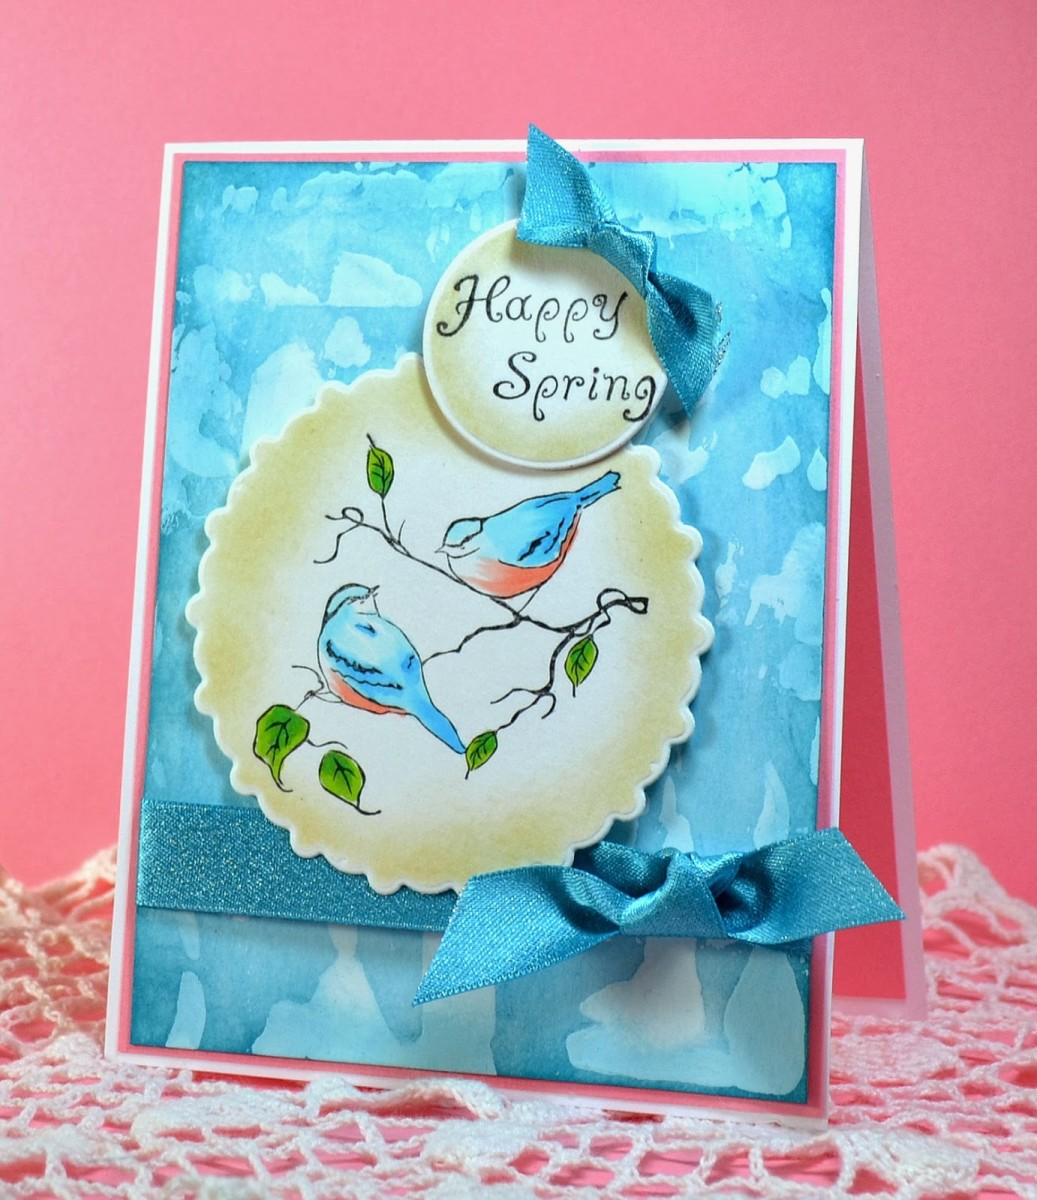 You can use thin layers of gesso on your greeting cards as a base to add a colored background,